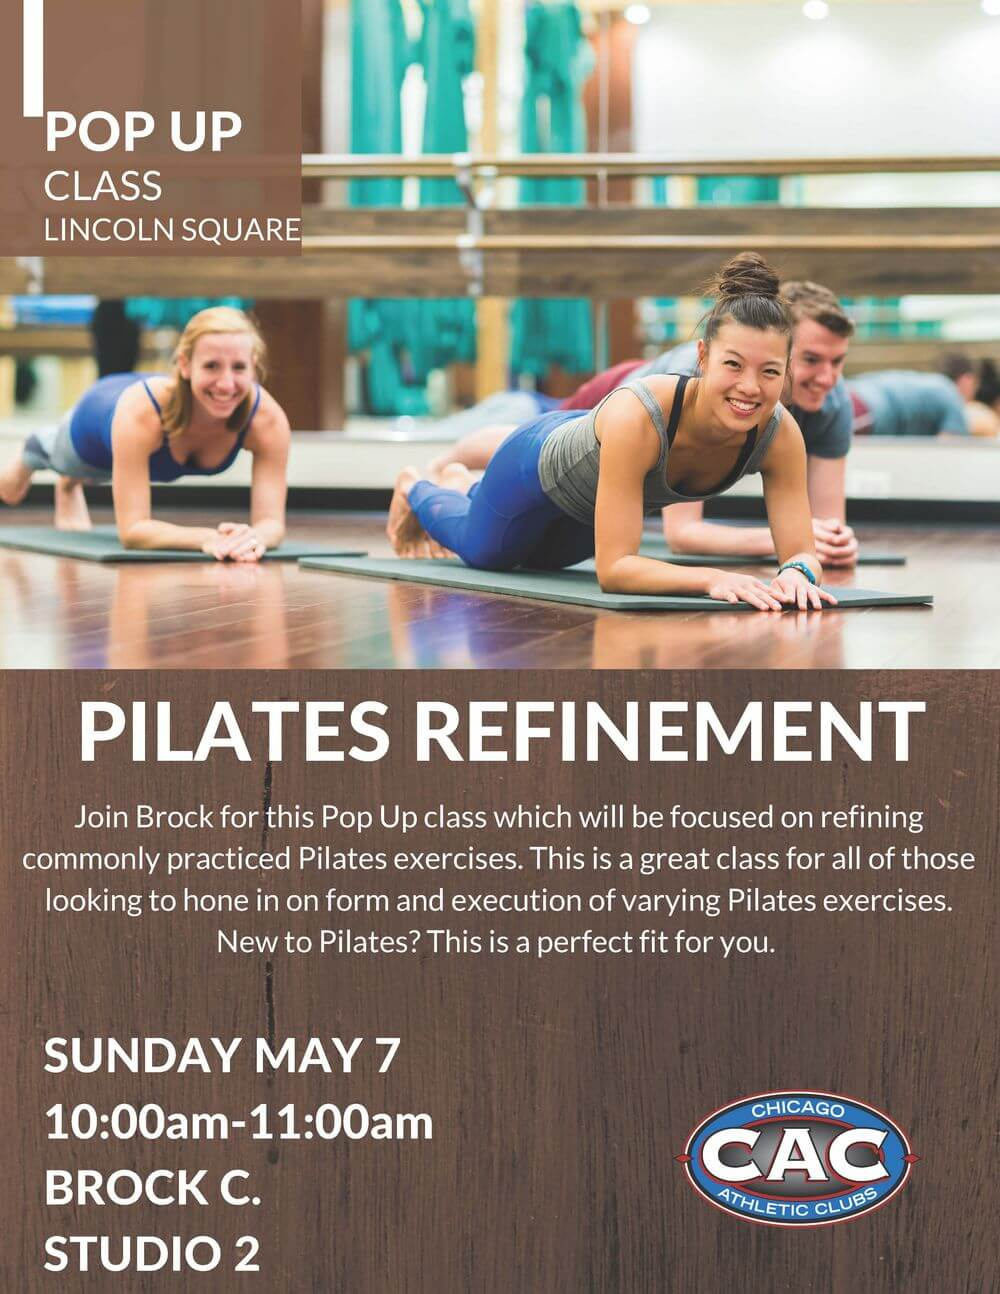 POP UP PILATES REFINEMENT LSAC.jpg